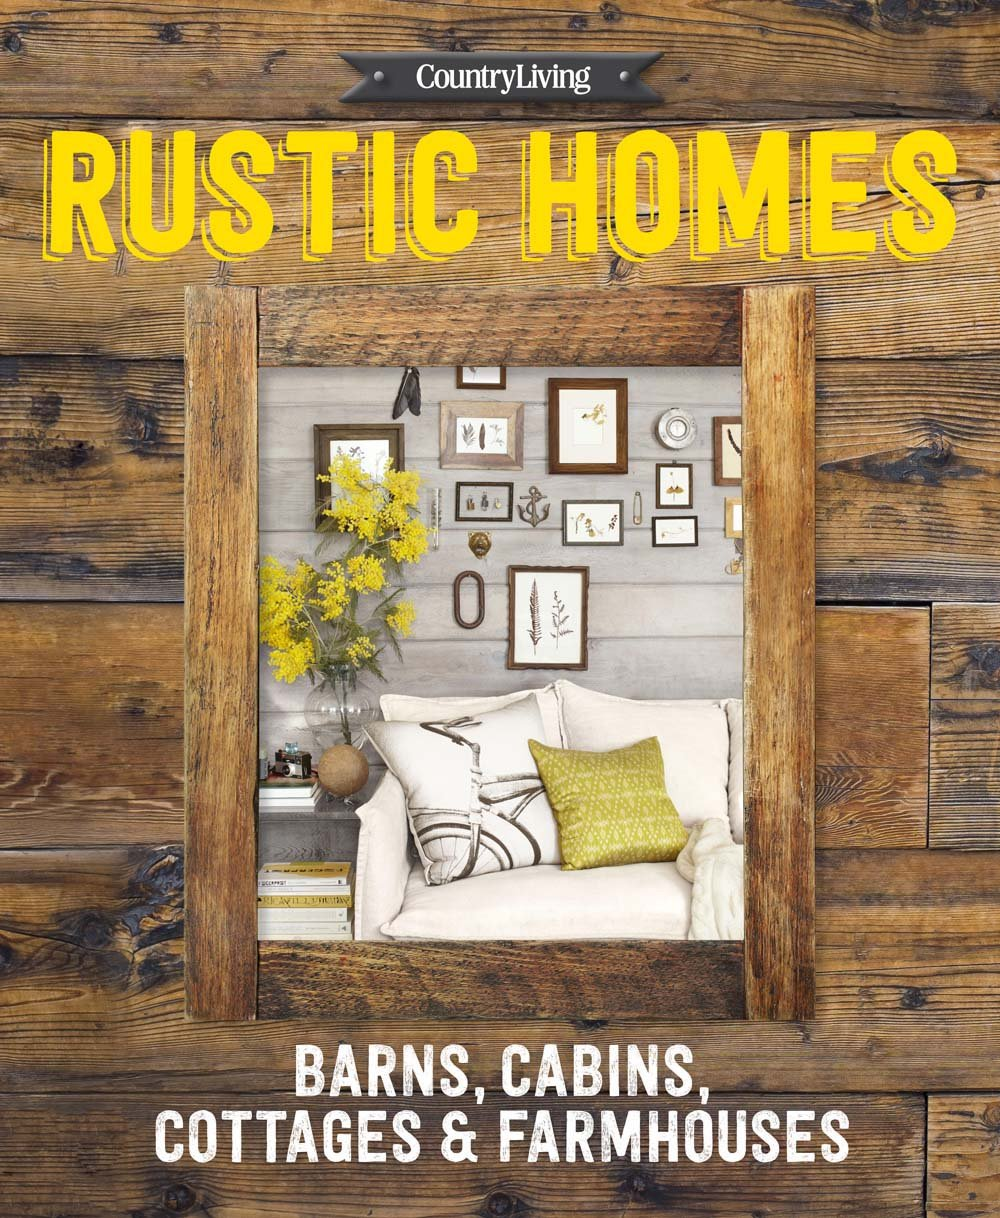 Country Living Rustic Homes Cabins Barns Cottages /& Farmhouses